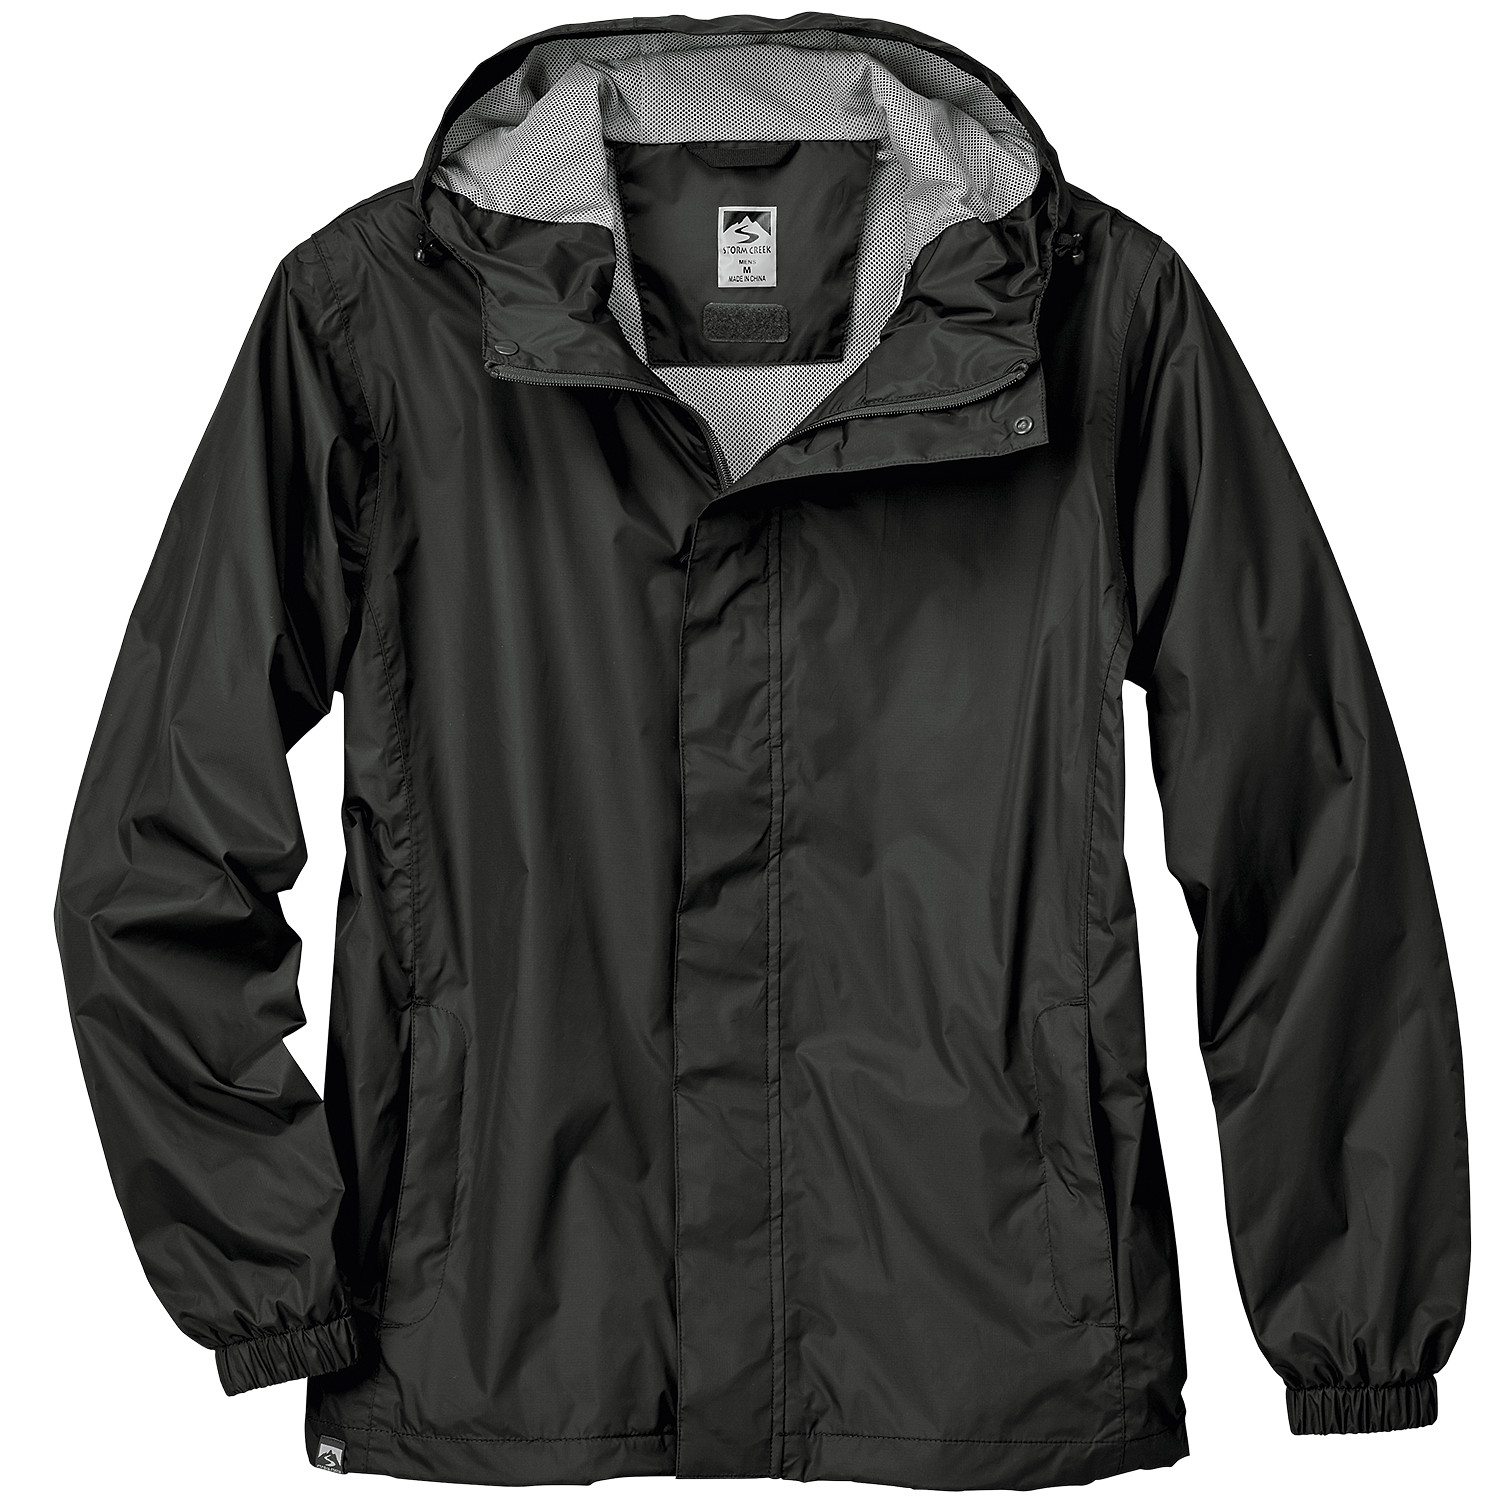 Storm Creek 6560 - Men's 'Rupert' Packable Rain Jacket